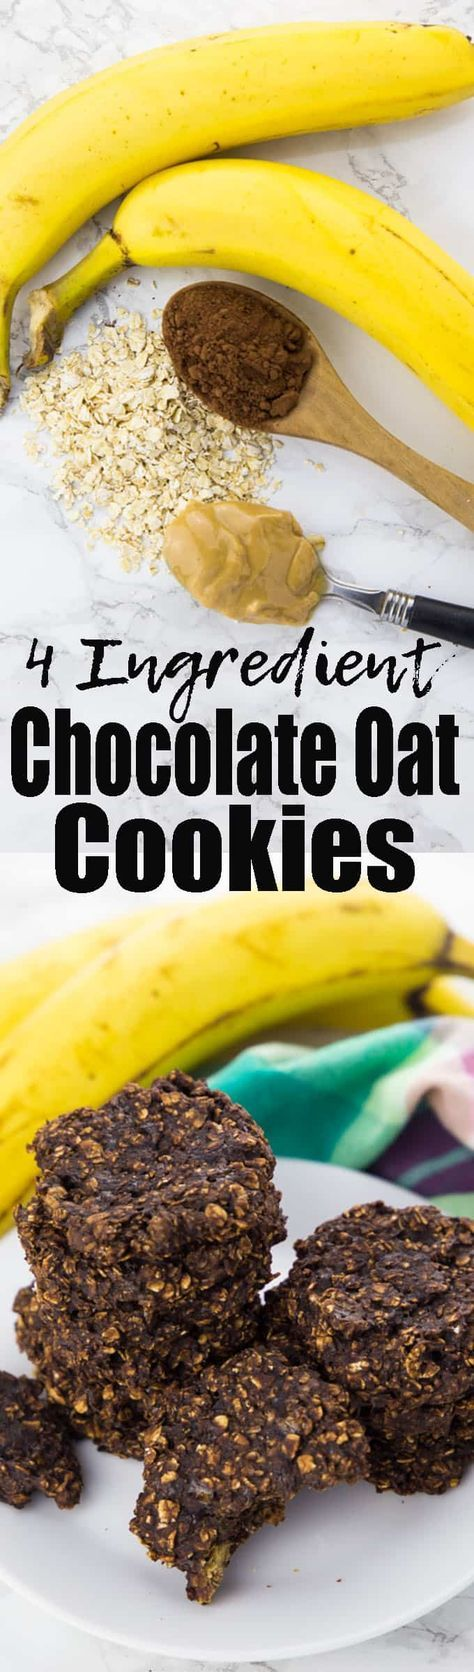 These banana chocolate oatmeal cookies are one of my favorites vegan snacks or cookie recipes in general! You need only 4 ingredients and the recipe seriously couldn't be easier! Find more vegan desserts and vegan cookies at veganheaven.org!